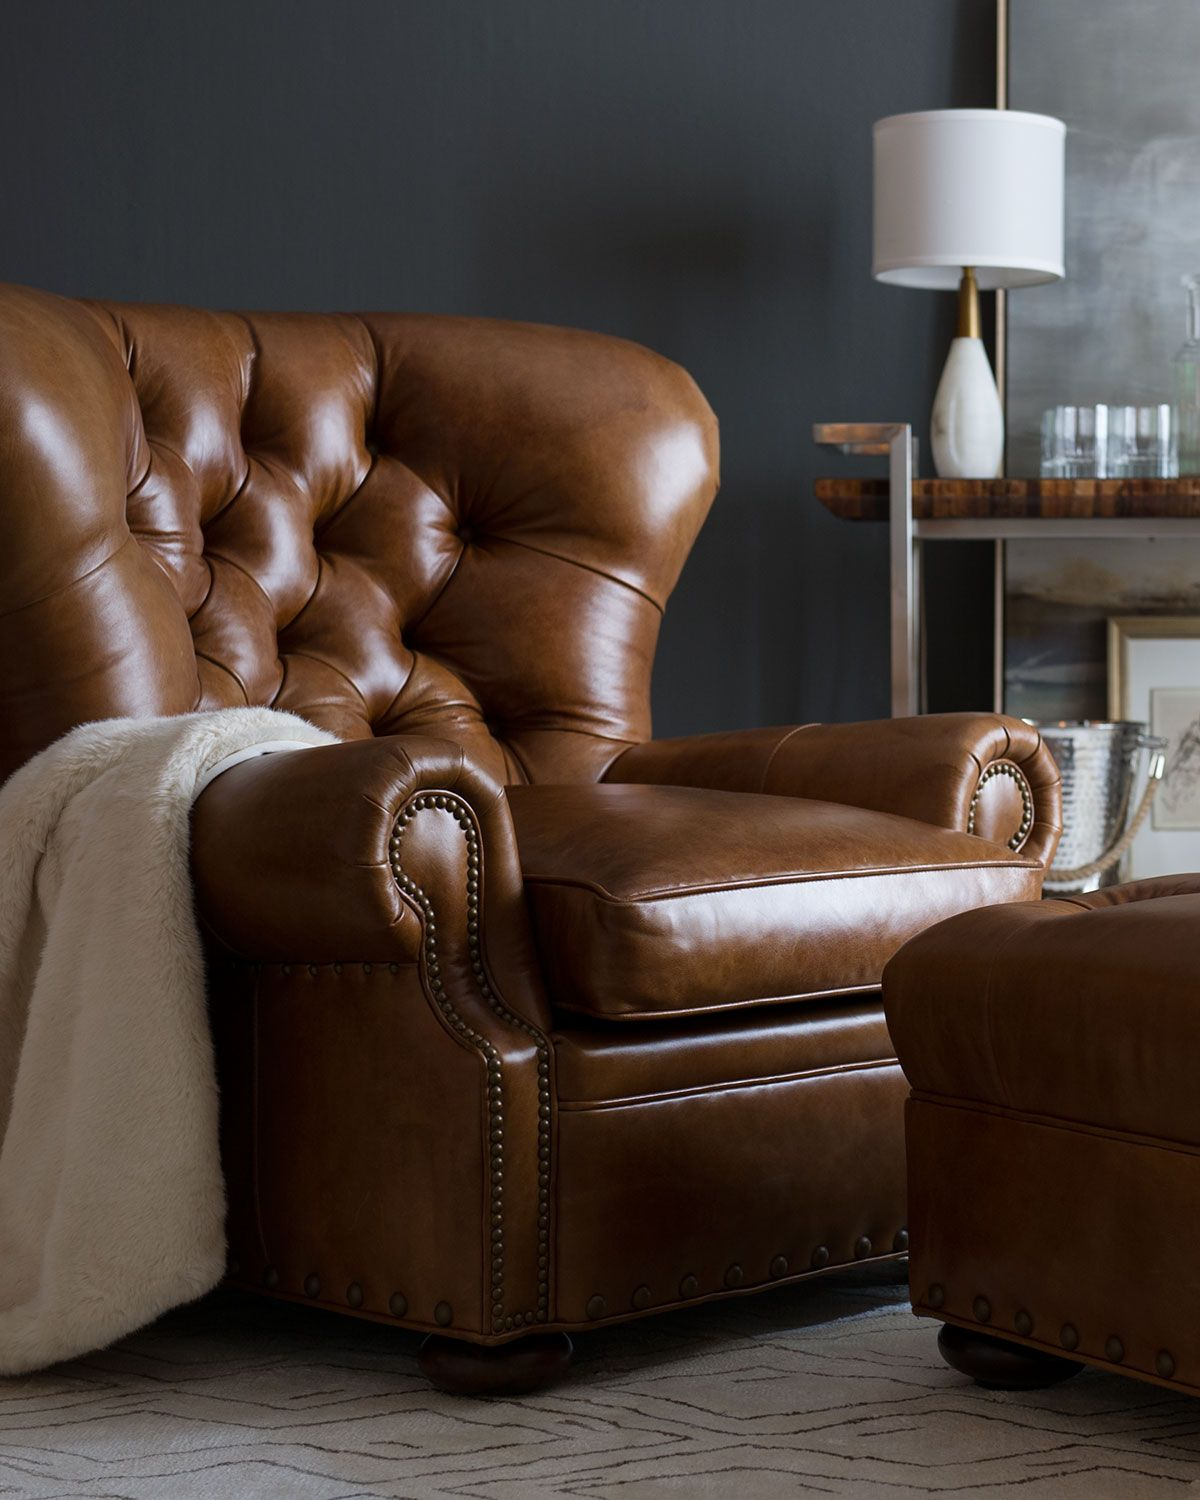 Pleasing Lansbury Tufted Leather Ottoman Design Style New Dailytribune Chair Design For Home Dailytribuneorg